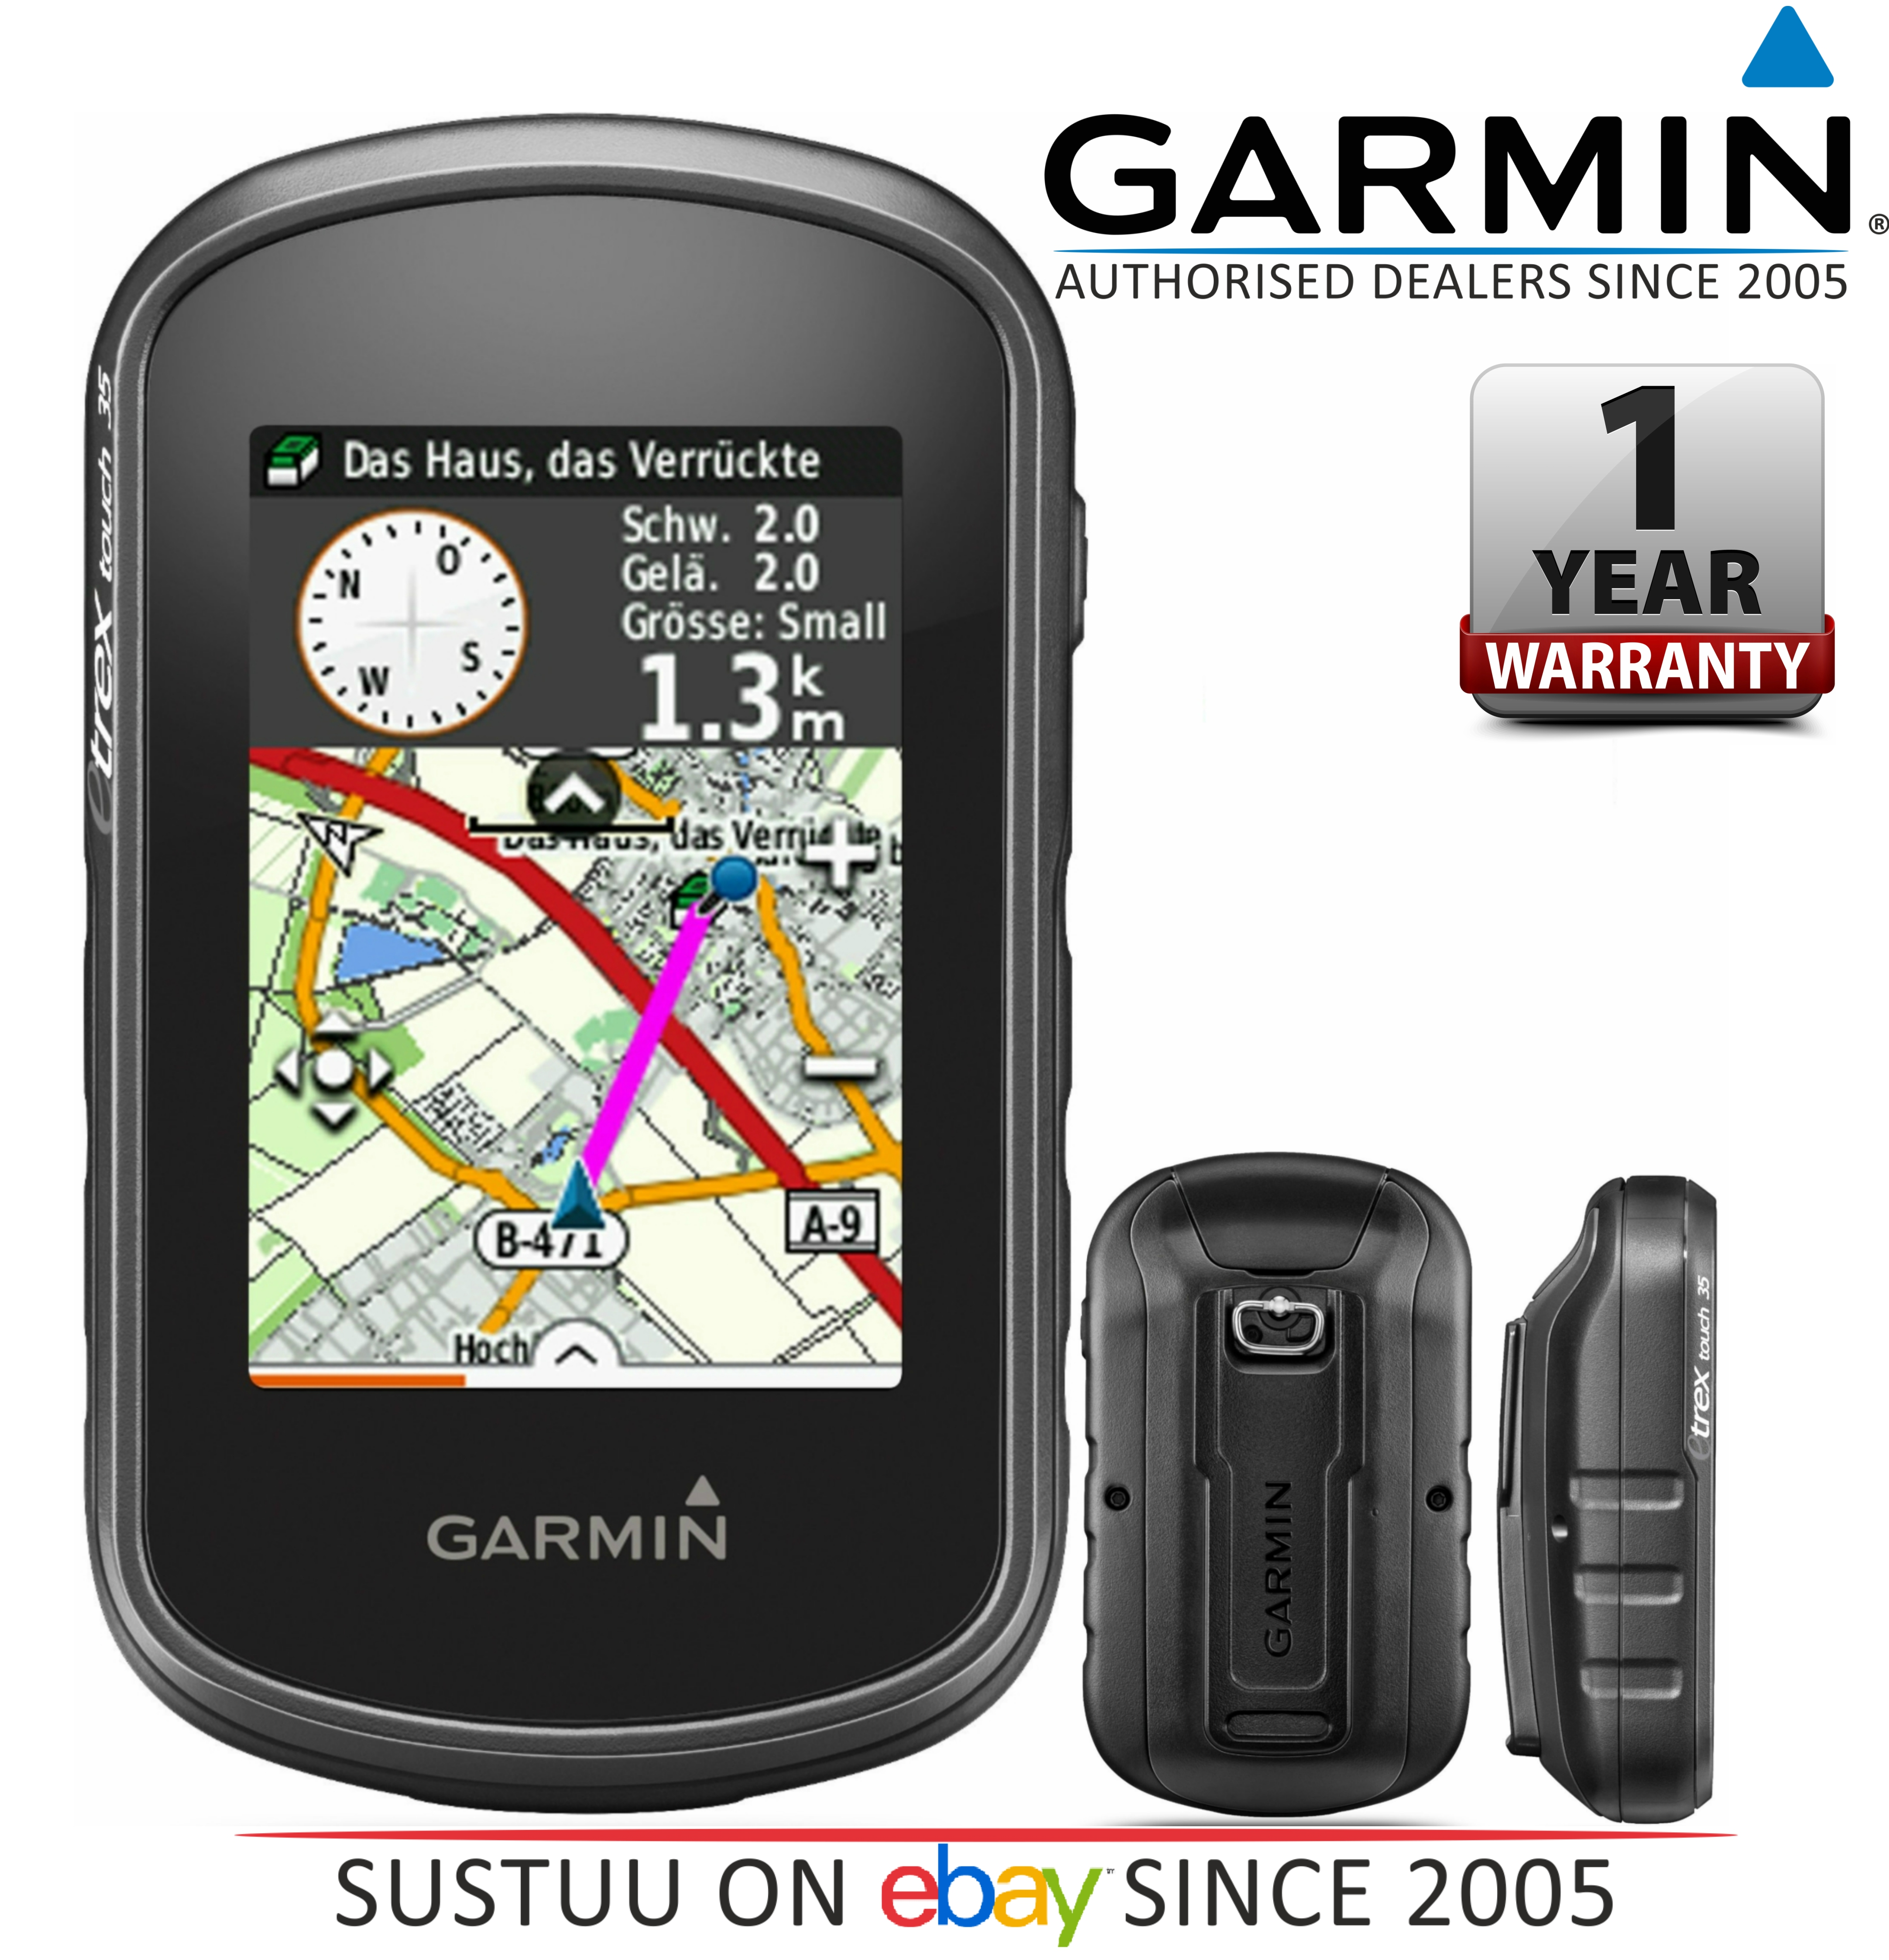 Garmin eTrex Touch 35 GPS Outdoor Handheld Navigator with TopoActive Europe Maps | eBay